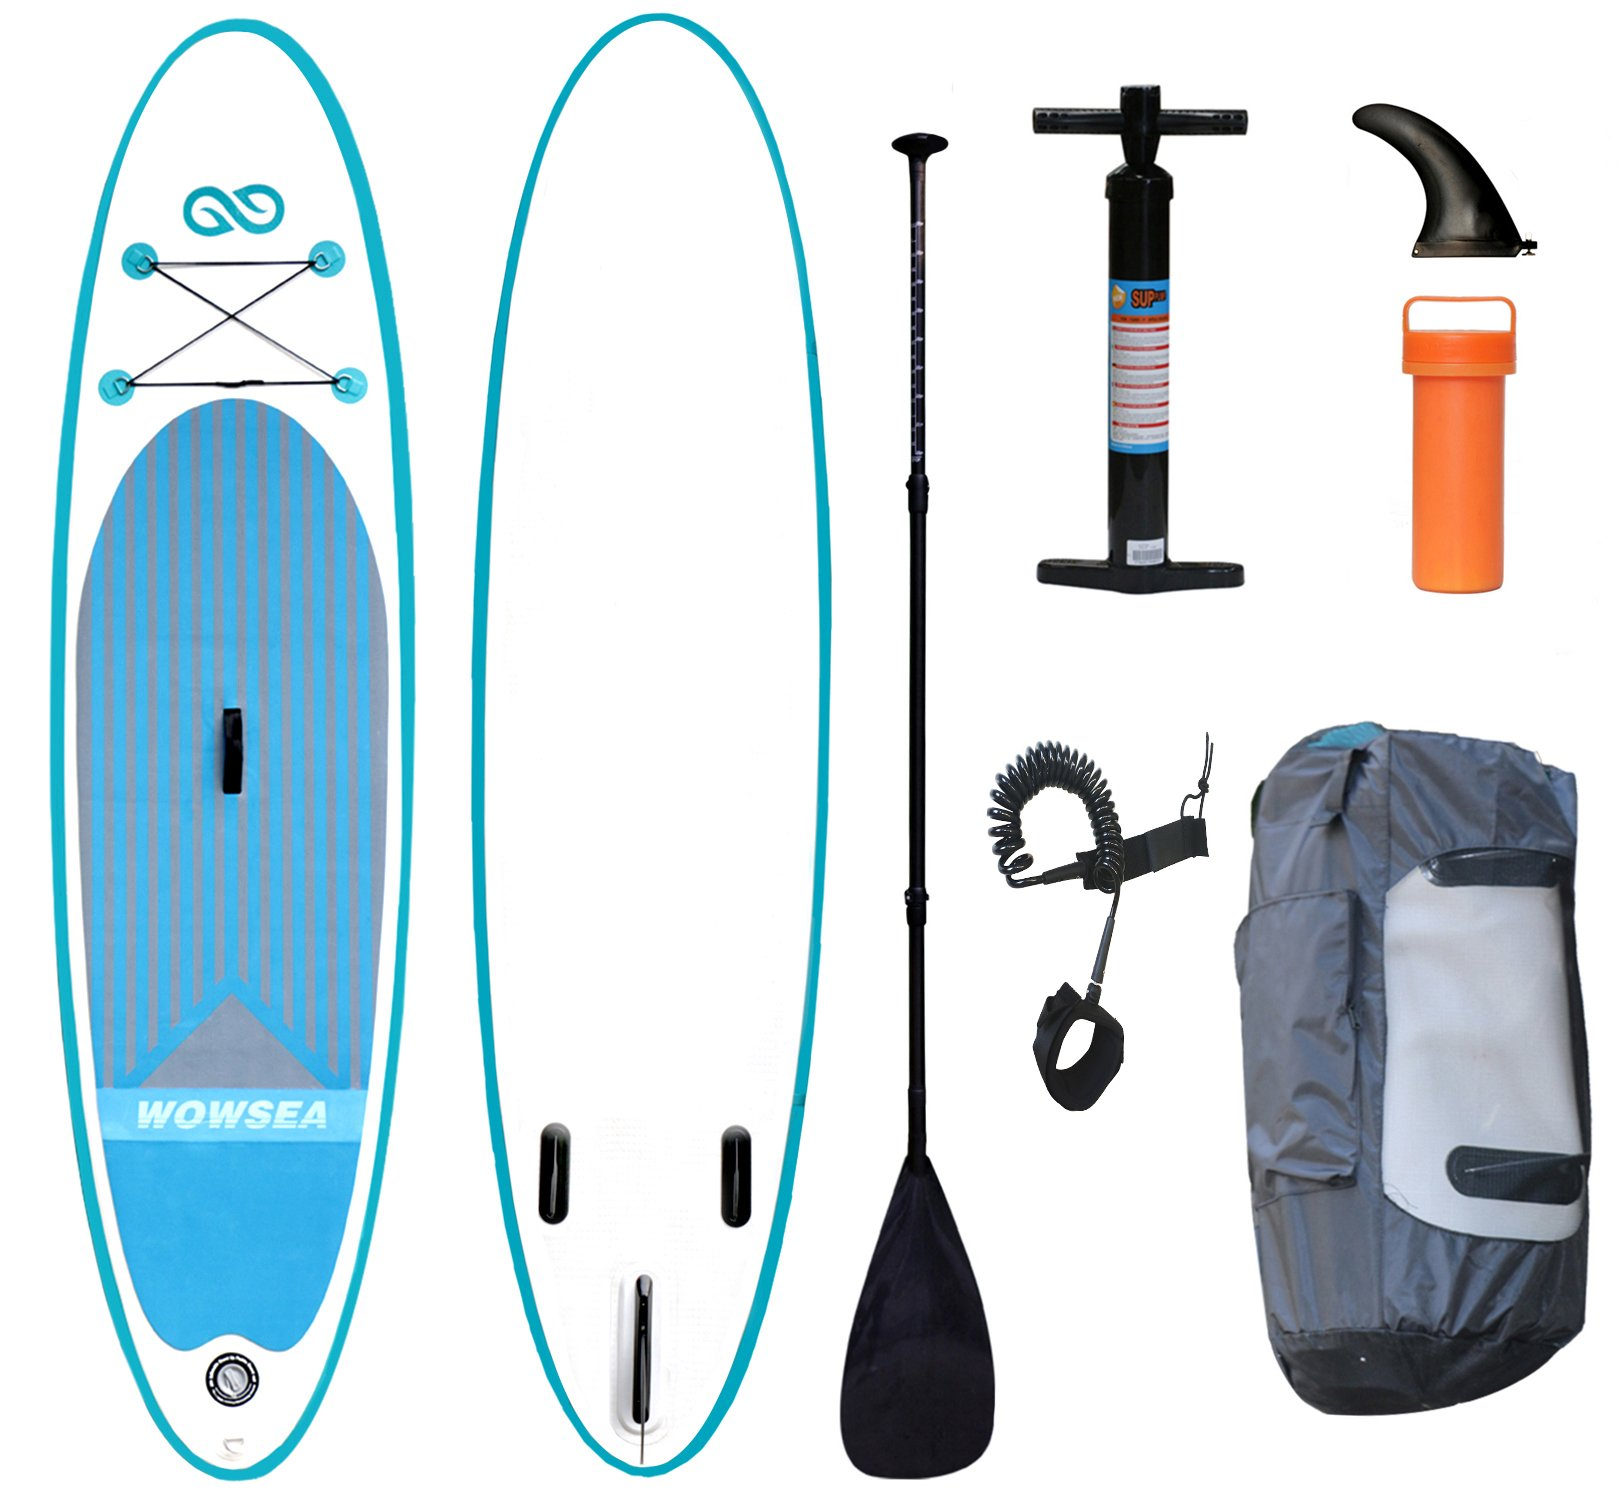 WOWSEA Inflatable Stand Up Paddle Board Together with Adjustable Carbon Fiber Sup Paddle, Travel Backpack, Repair Cylinder,Tyre Pump & SUP Leash,Size 125 x 32 x 6 inch by WOWSEA